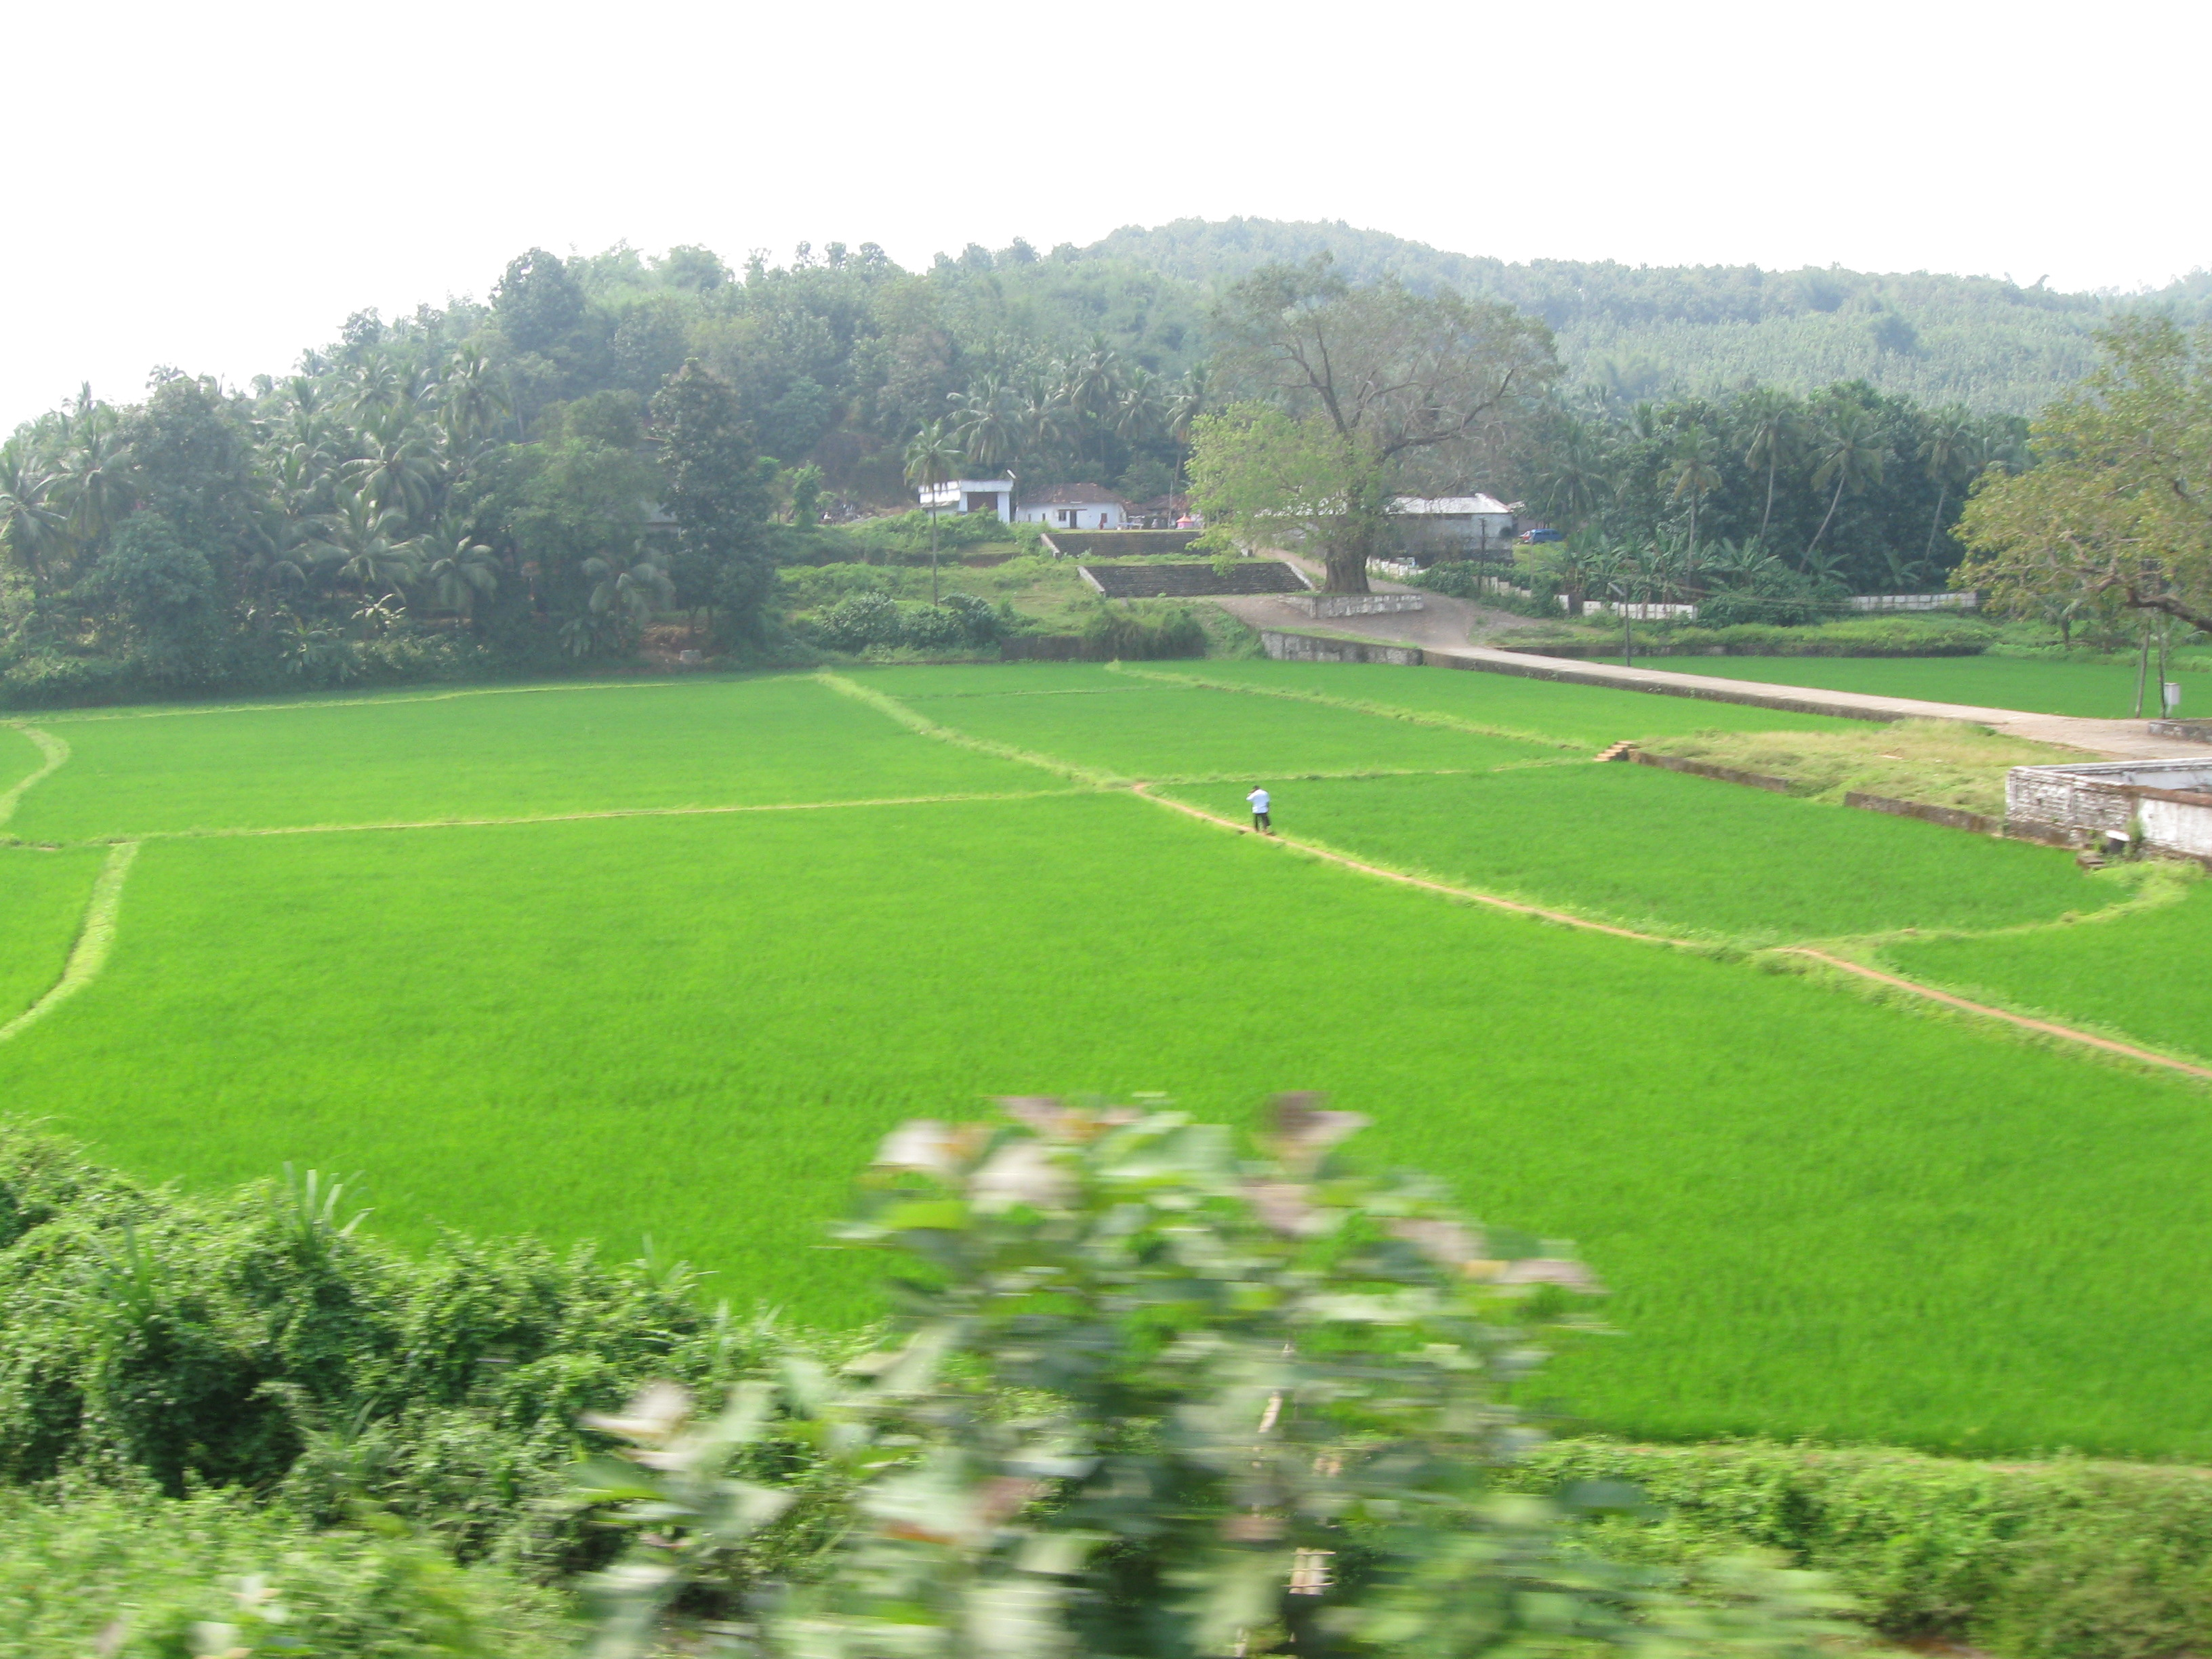 Palakkad India  City pictures : Description Paddy fields near Palakkad, Kerala, India